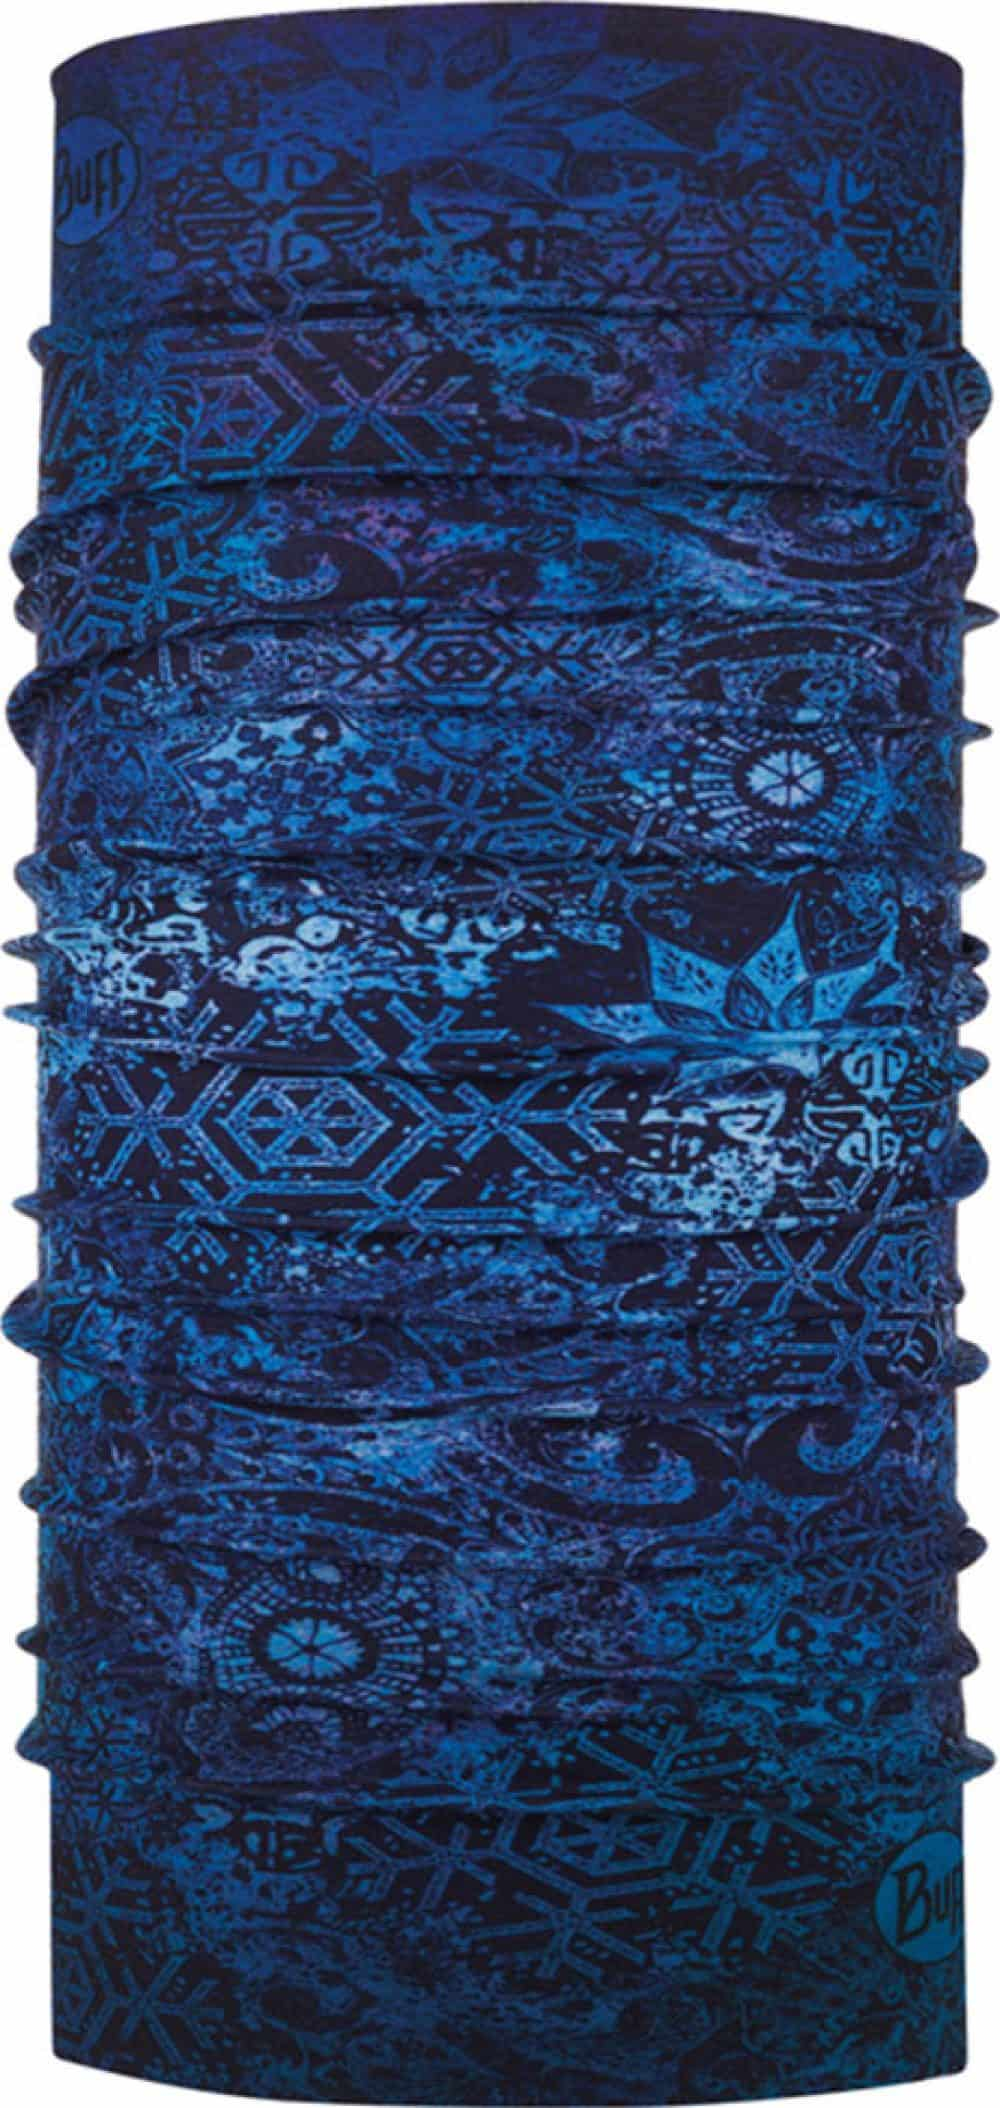 "Studio photo of the Original Buff® Design ""Fairy Snow Night Blue"". Source: buff.eu"